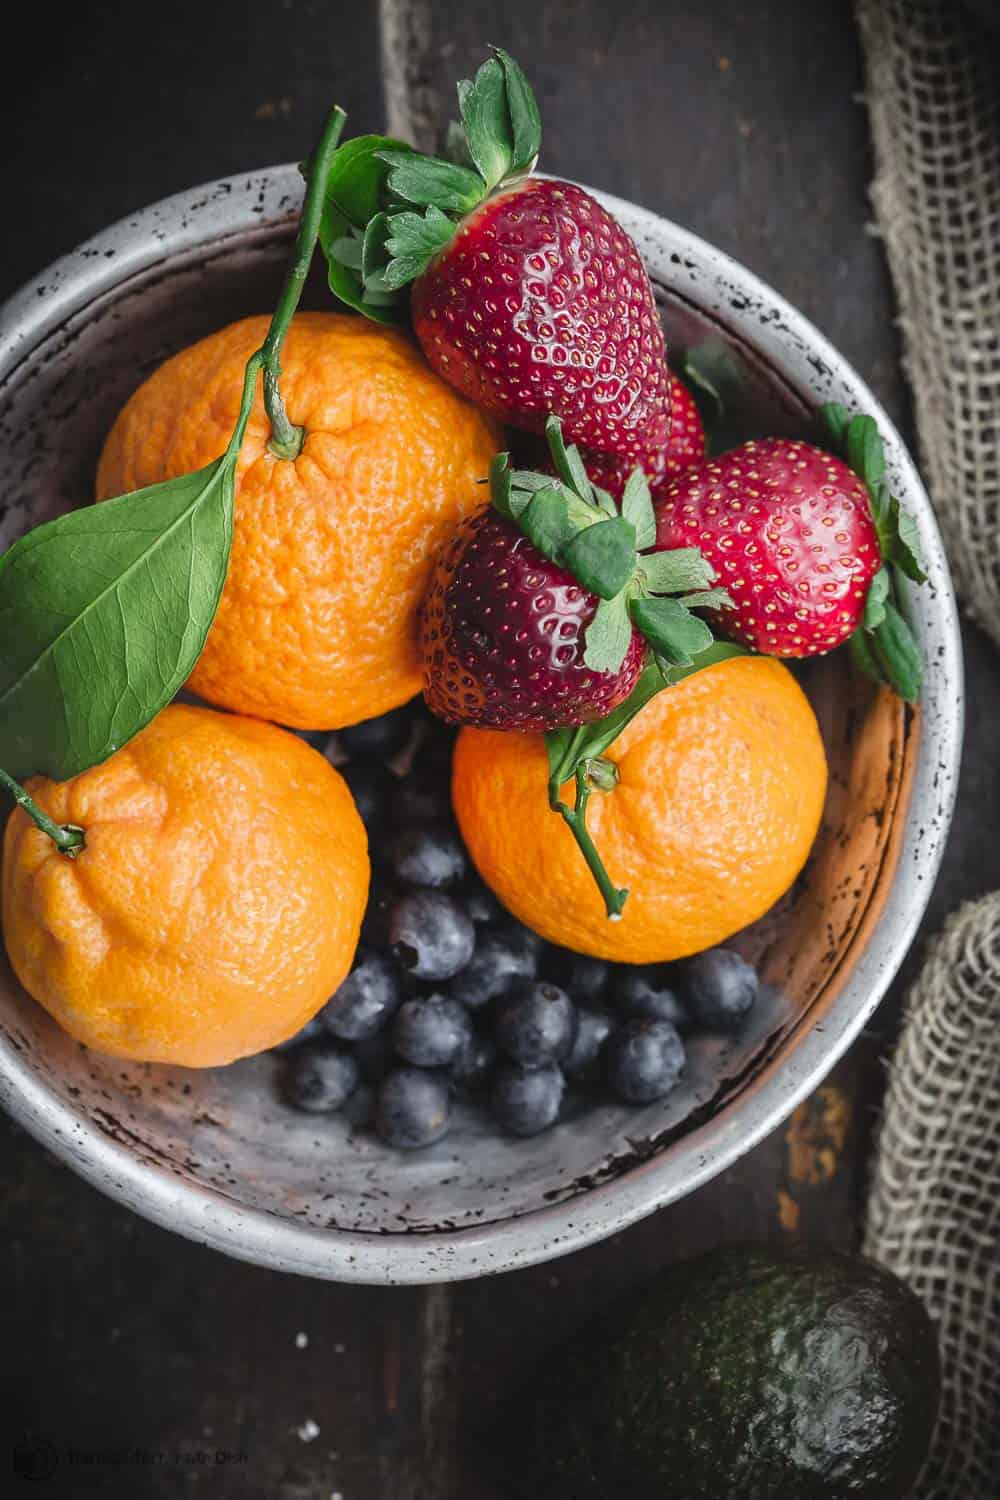 Fresh fruits including citrus fruit and berries in a bowl for a Mediterranean diet snack